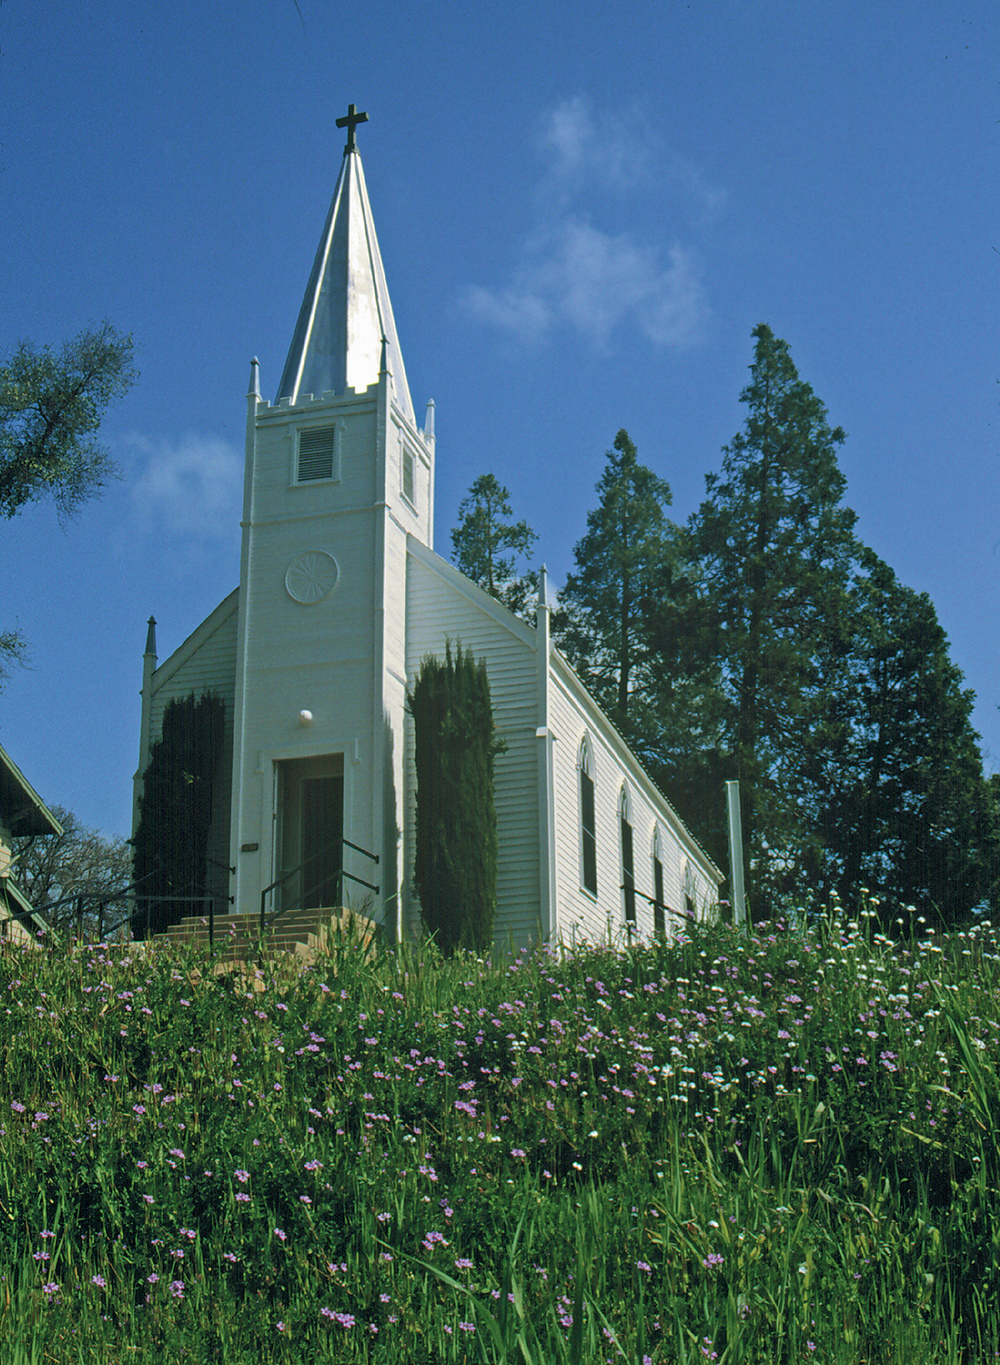 St. Joseph's Catholic Church